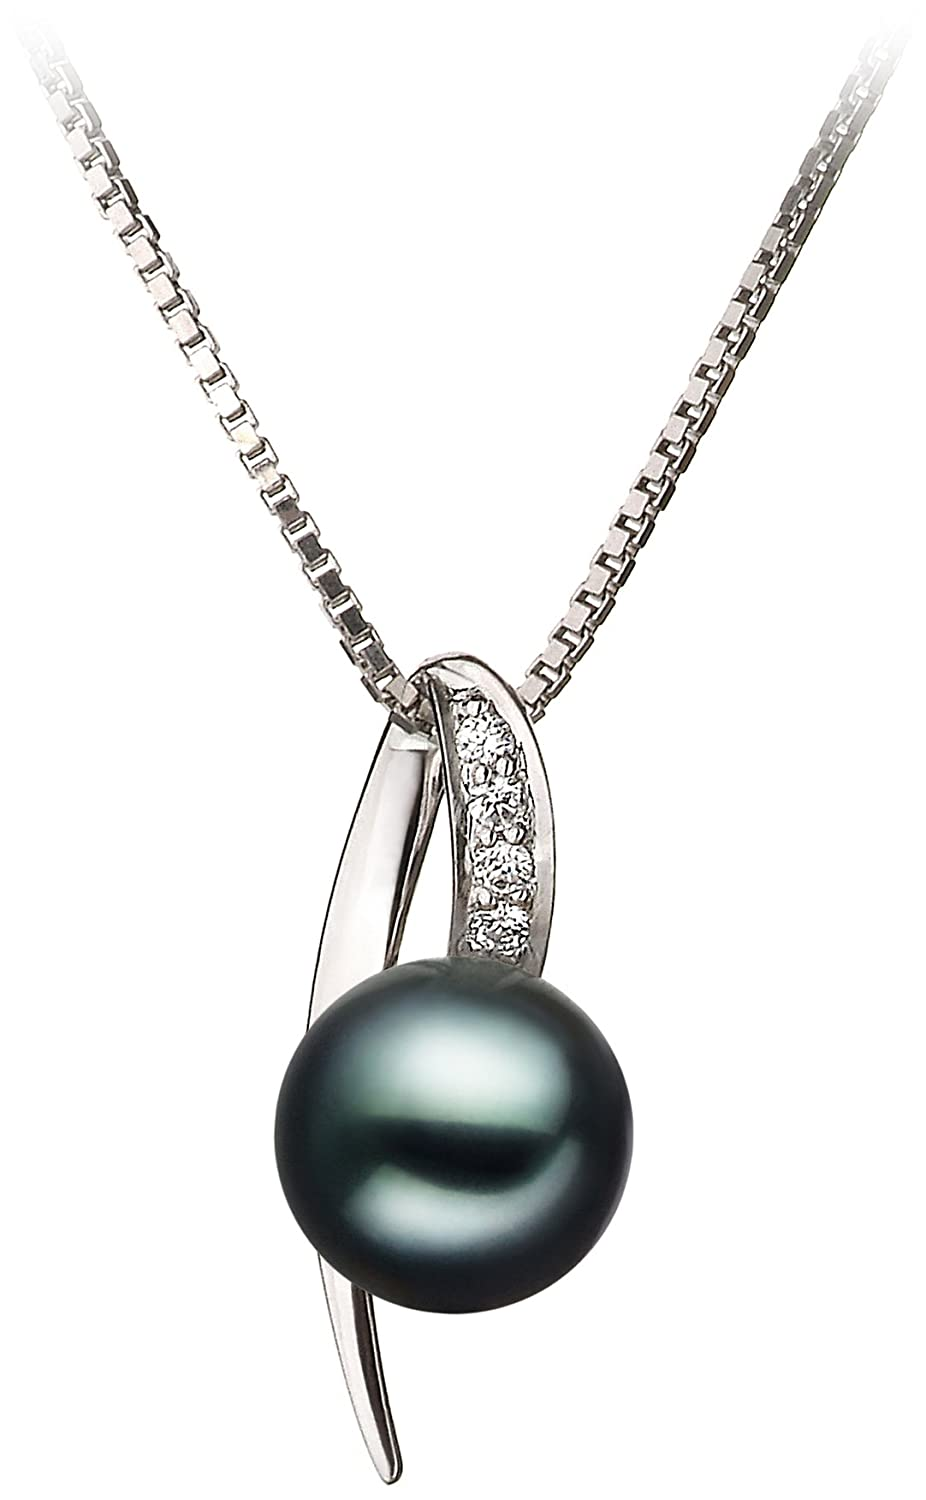 Destina Black 7-8mm AA Quality Japanese Akoya 925 Sterling Silver Cultured Pearl Pendant PearlsOnly CA-AMZ-JAK-B-AA-78-P-Destina